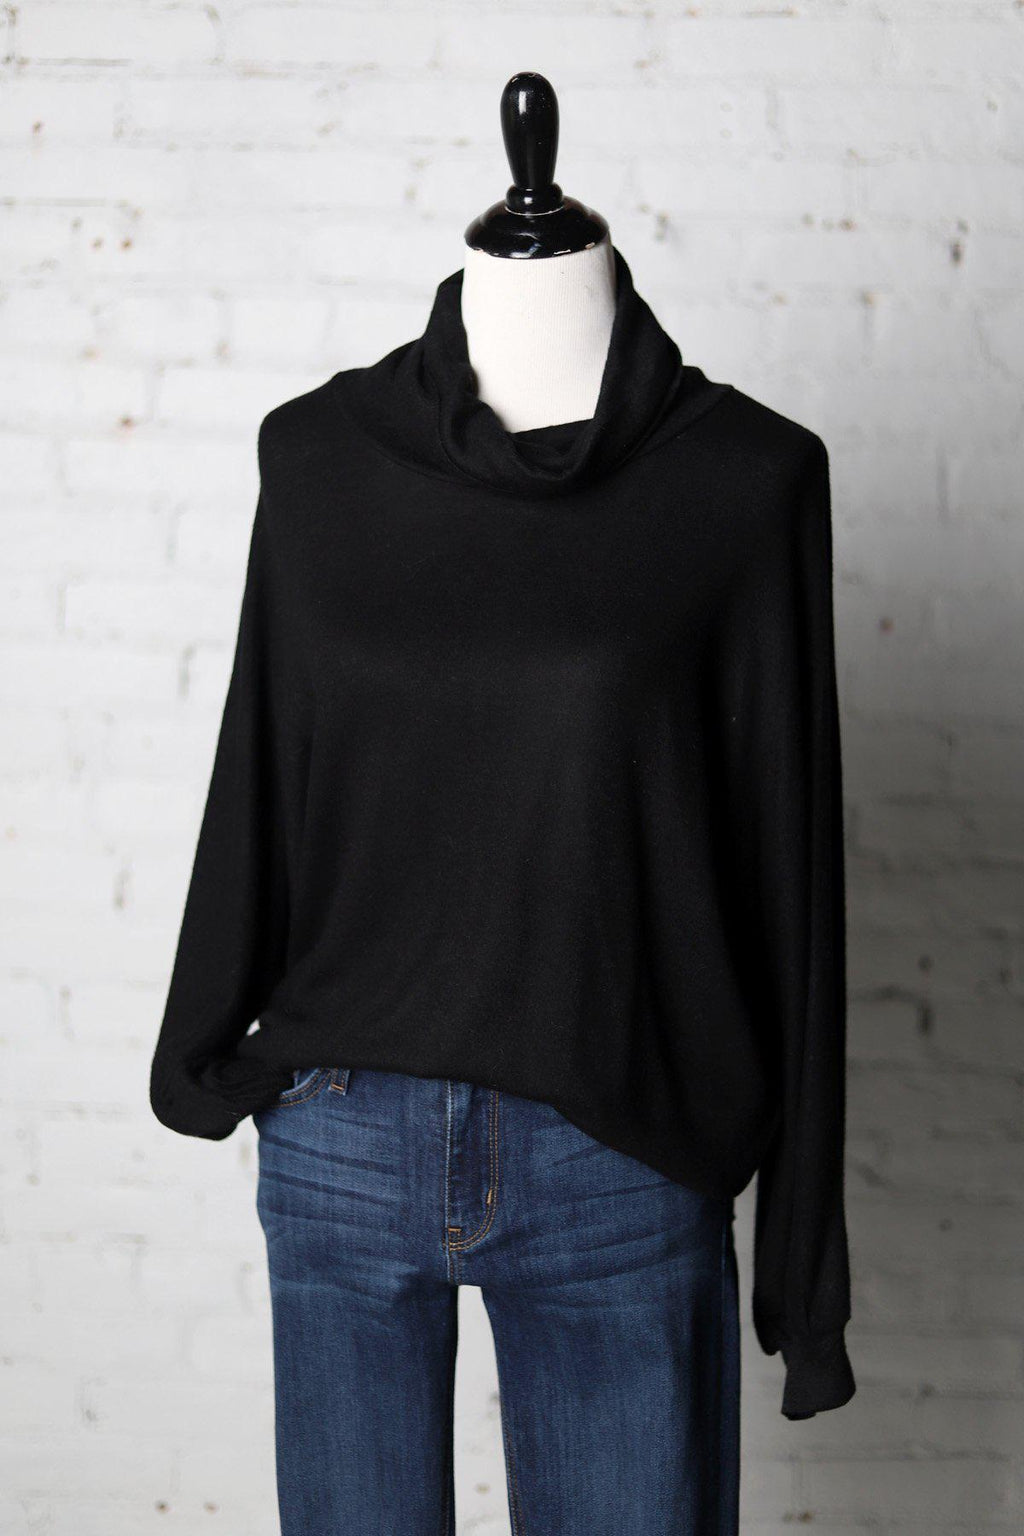 Fallon Cowl Neck Dolman Top